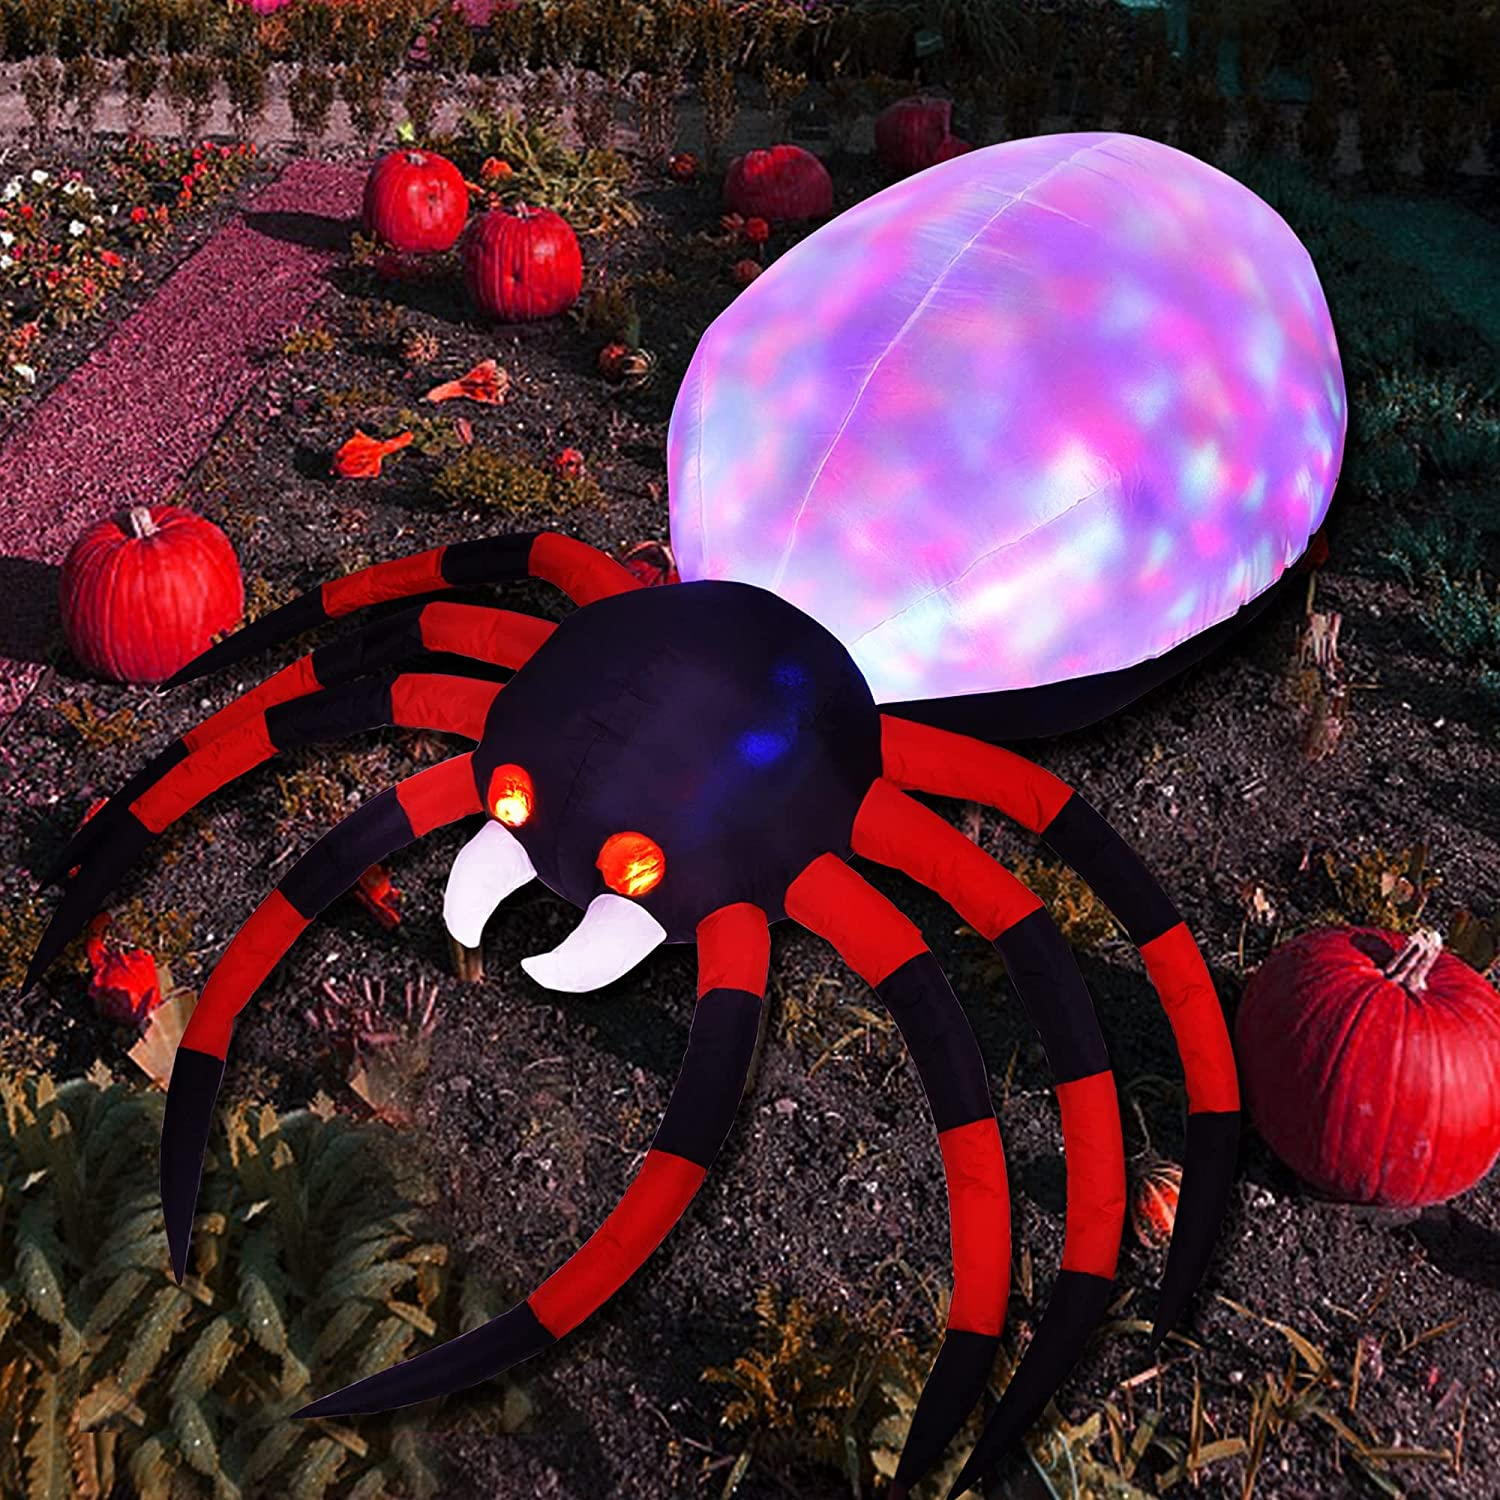 Popular standard ATDAWN 6FT Halloween Inflatable Spider New products world's highest quality popular with Magic Up Light Blow